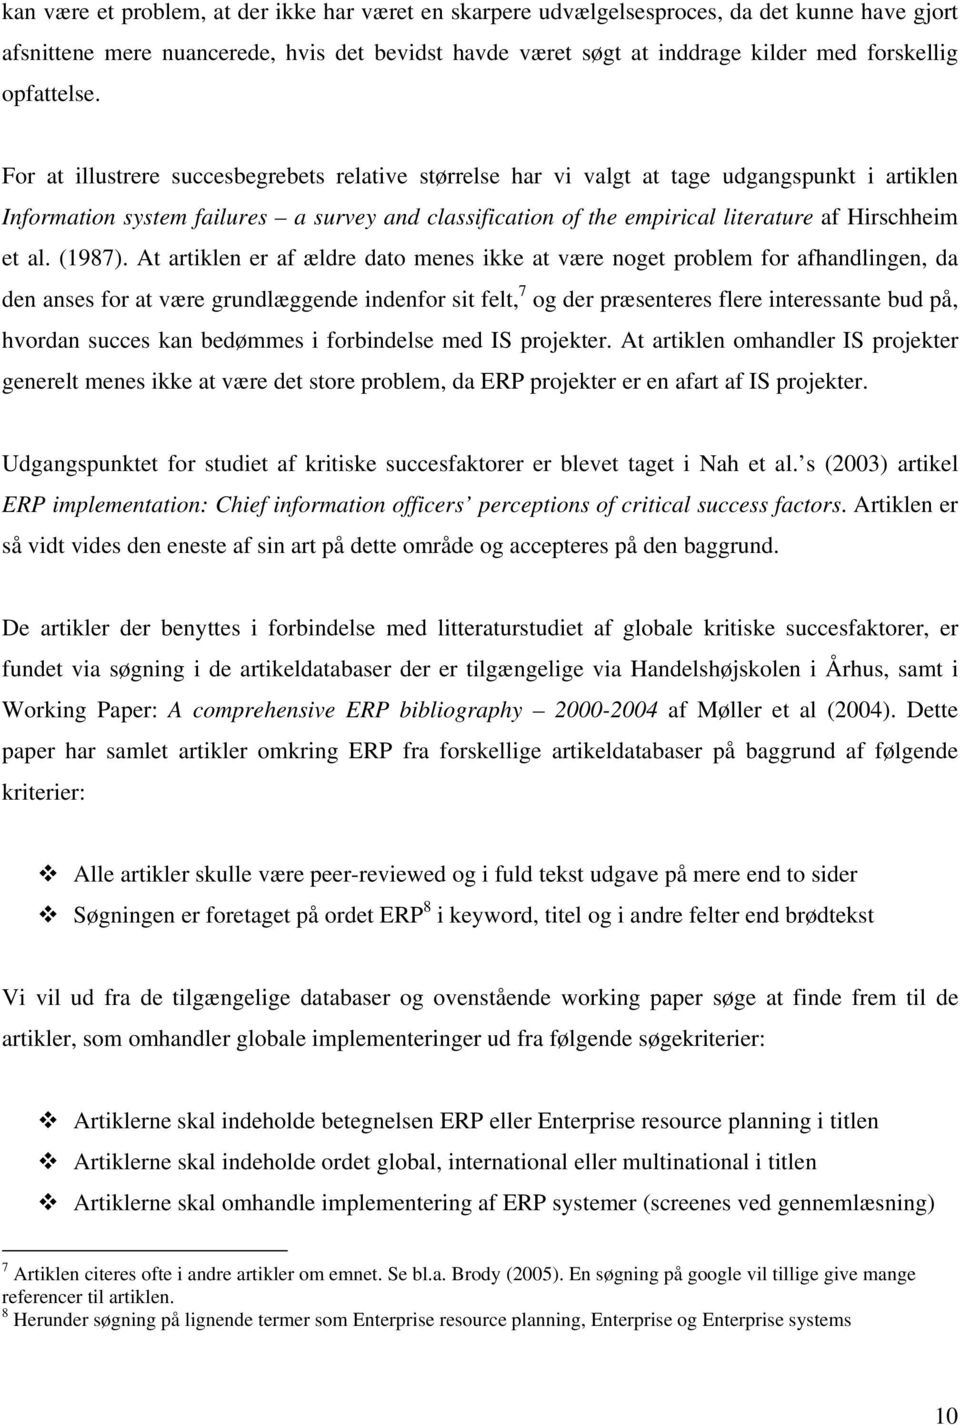 For at illustrere succesbegrebets relative størrelse har vi valgt at tage udgangspunkt i artiklen Information system failures a survey and classification of the empirical literature af Hirschheim et